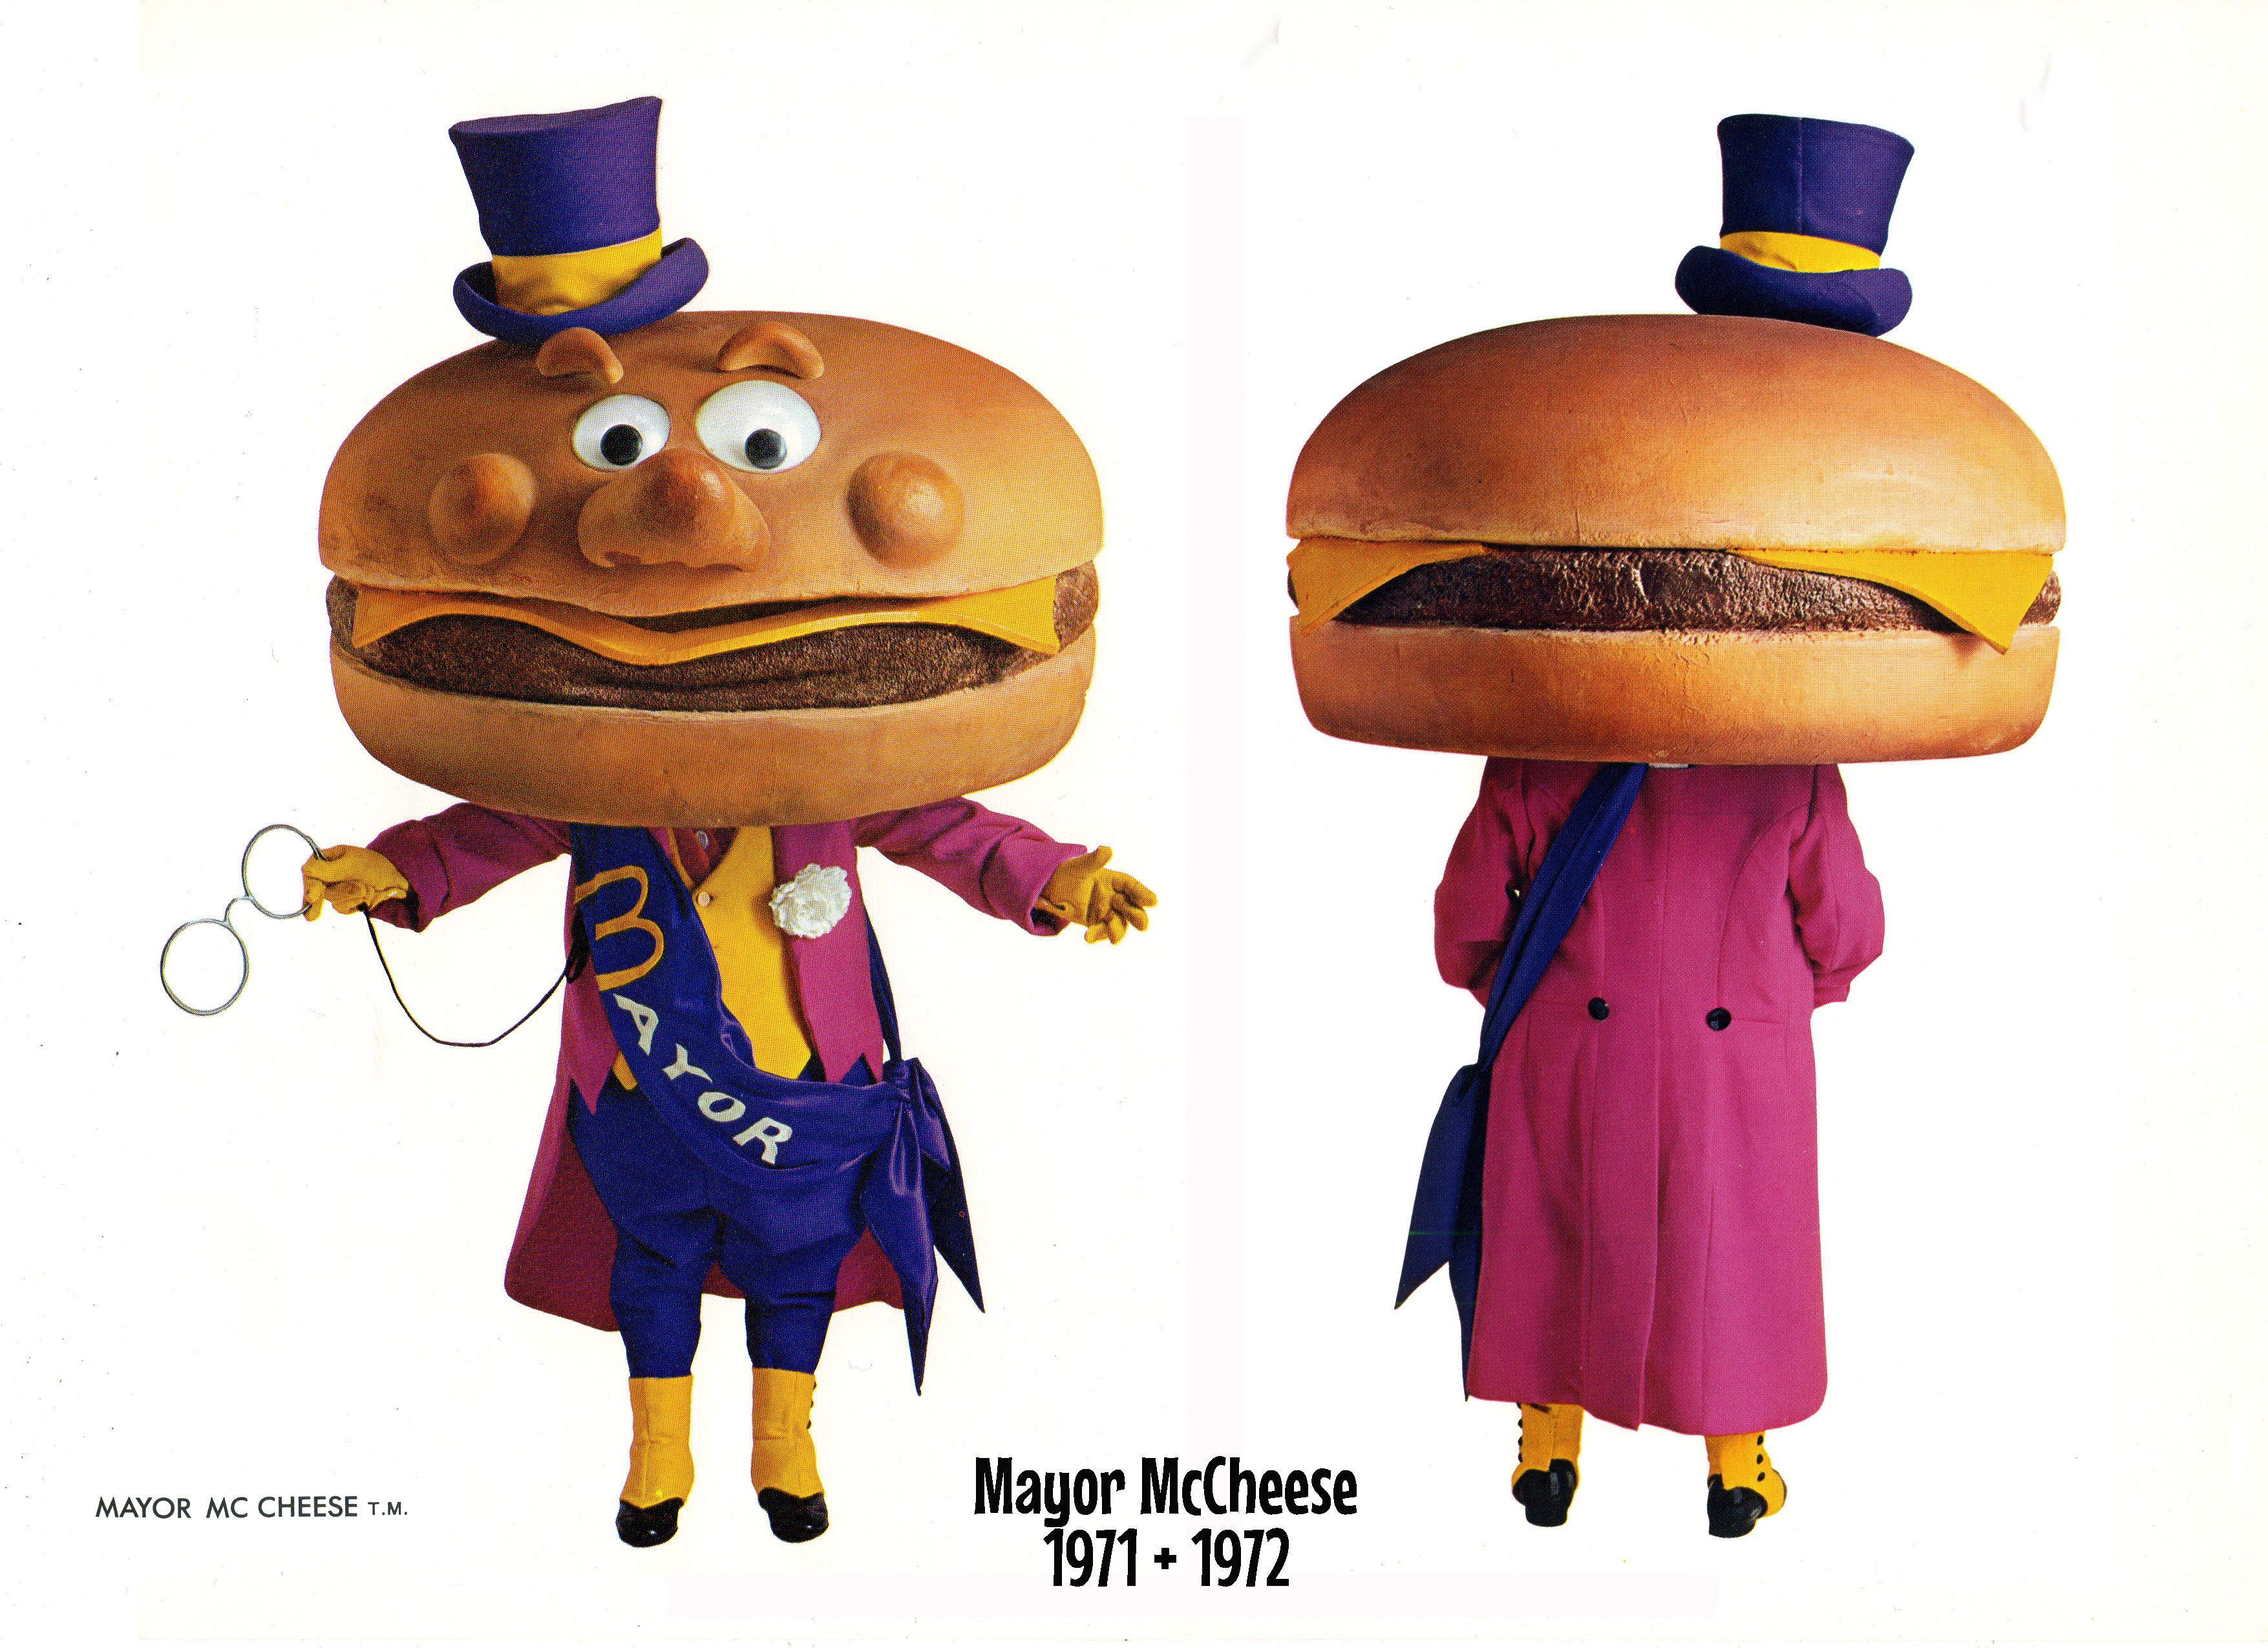 The Original Design For Mayor Mccheese As He First Appeared On Tv In Mcdonaldland In 1971 And 1972 Mayor Howard Morris Ronald Mcdonald Costume Little Person Mayor mccheese is the mayor of mcdonaldland , the fictional world seen in mcdonald's commercials.he has an enormous cheeseburger for a head. the original design for mayor mccheese